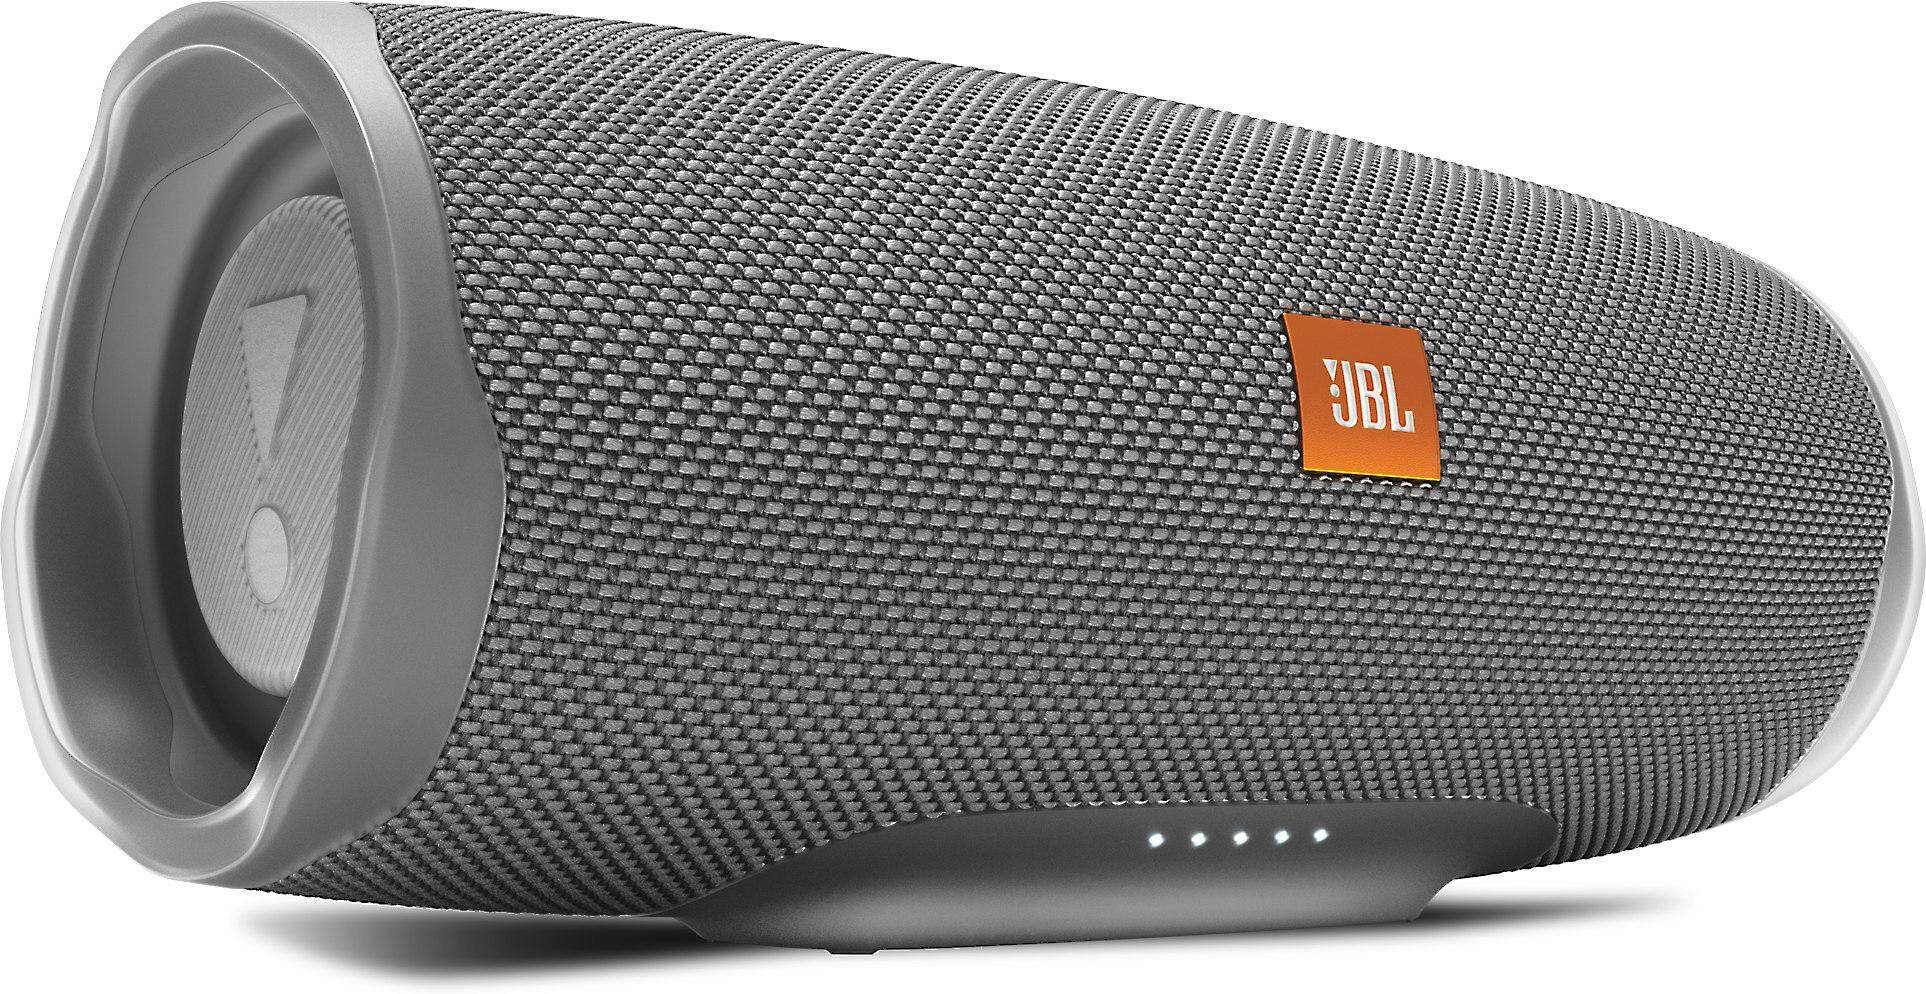 JBL Charge 4 Portable Waterproof Wireless Bluetooth Speaker - 2019 New Model (GREY)